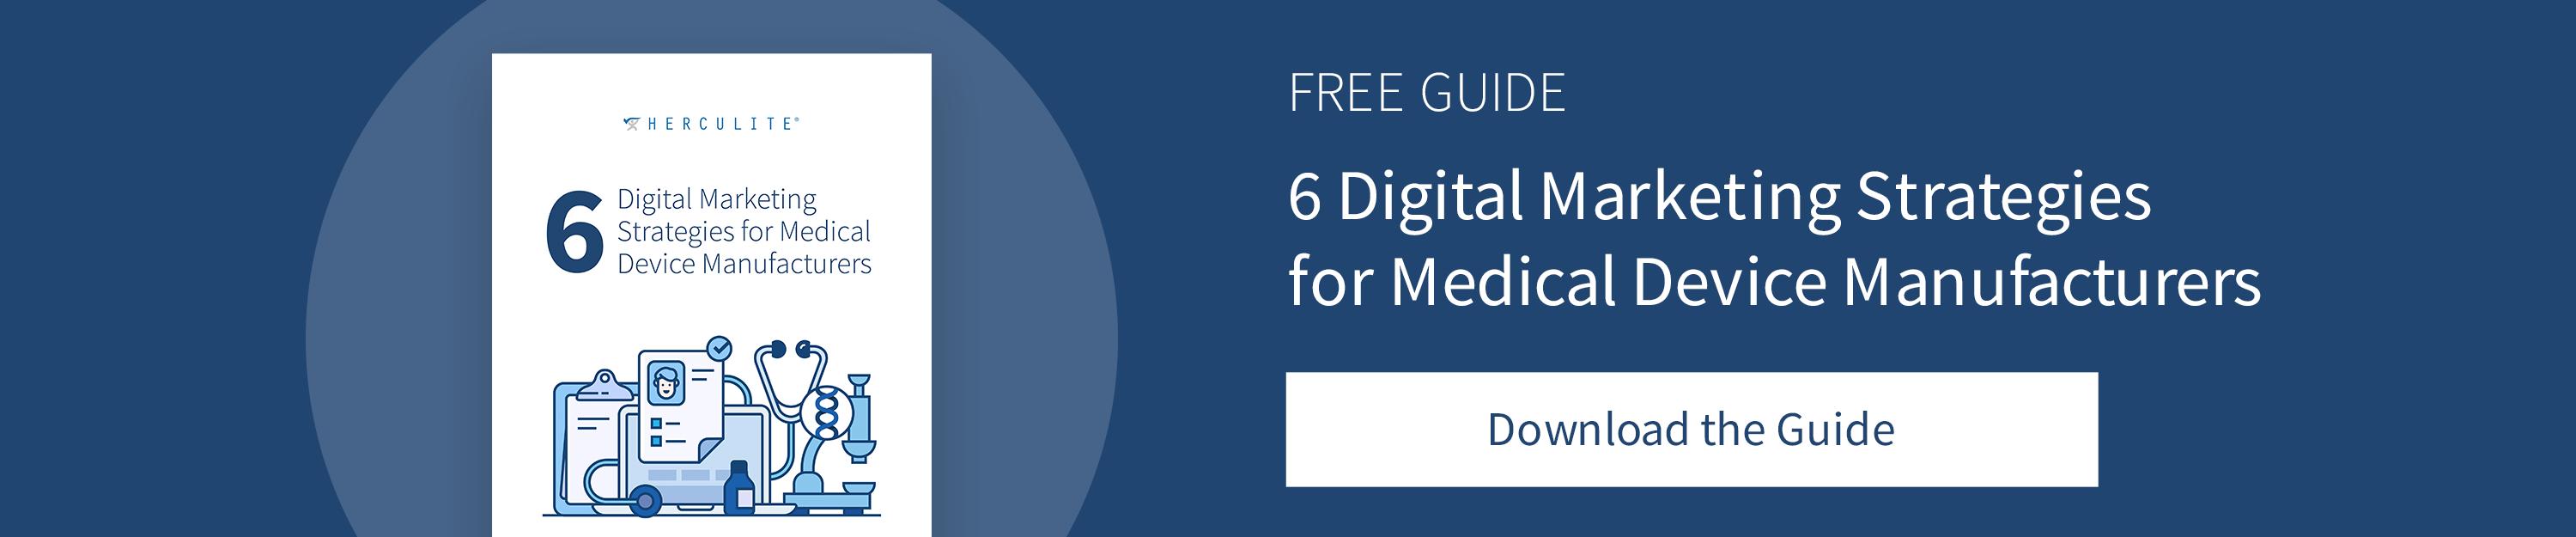 Herculite's 6 Digital Marketing Strategies for Medical Device Manufacturers